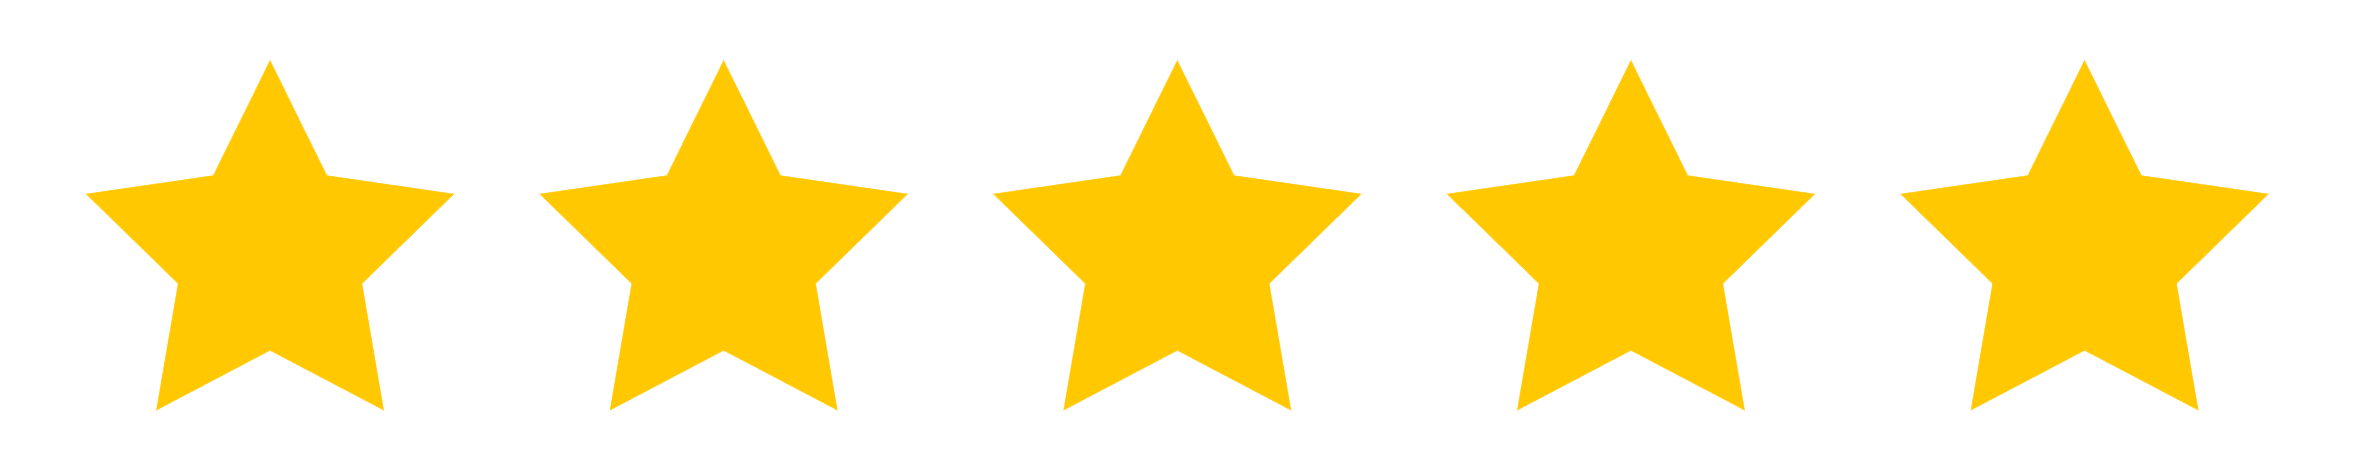 Reviews star rating from Diane C. for A-1 Self Storage in Concord, California